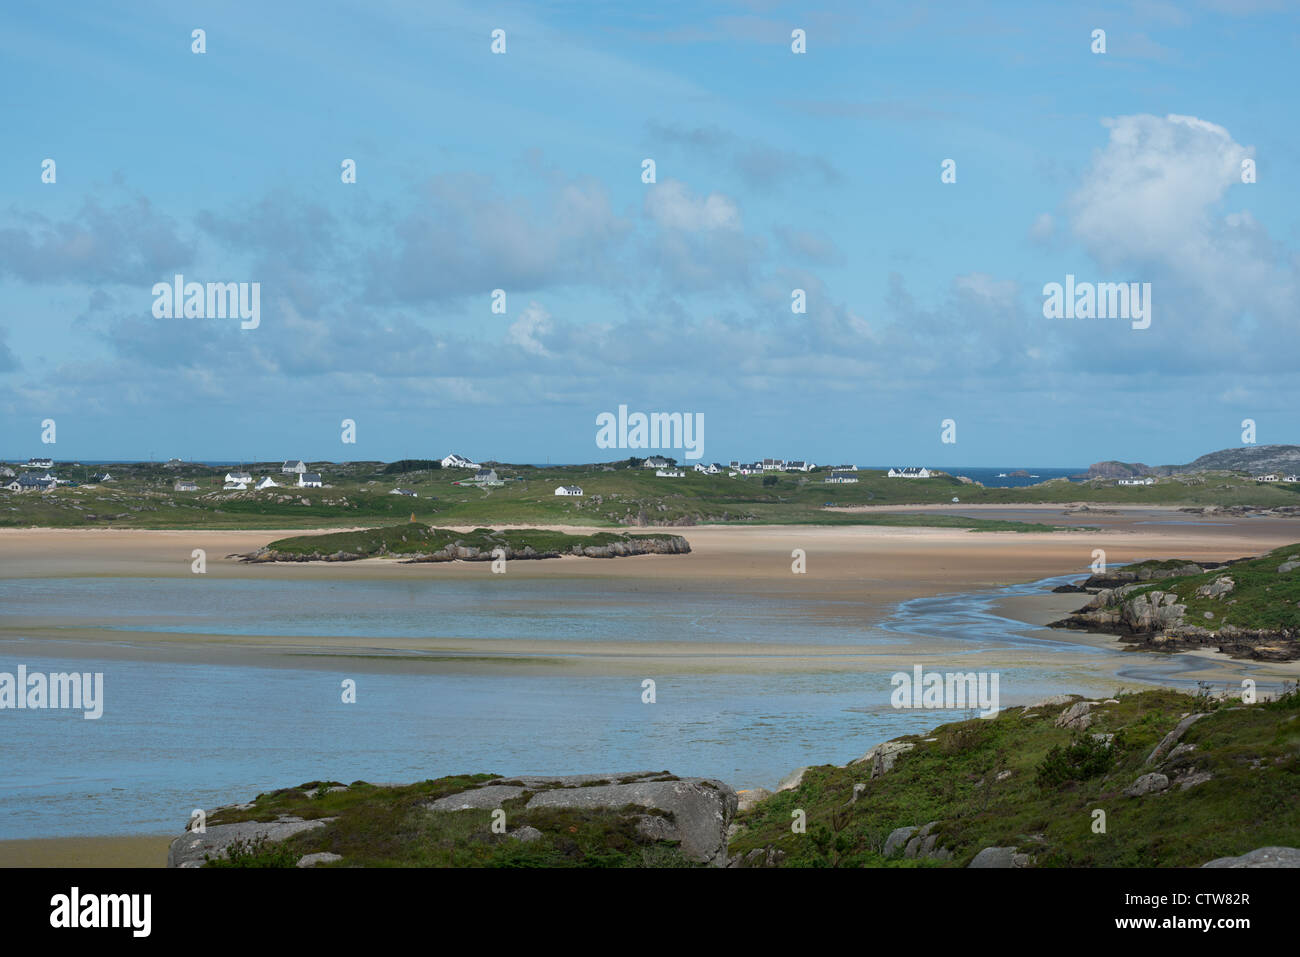 Small islands in the Rosses Bay, County Donegal, Republic of Ireland. - Stock Image